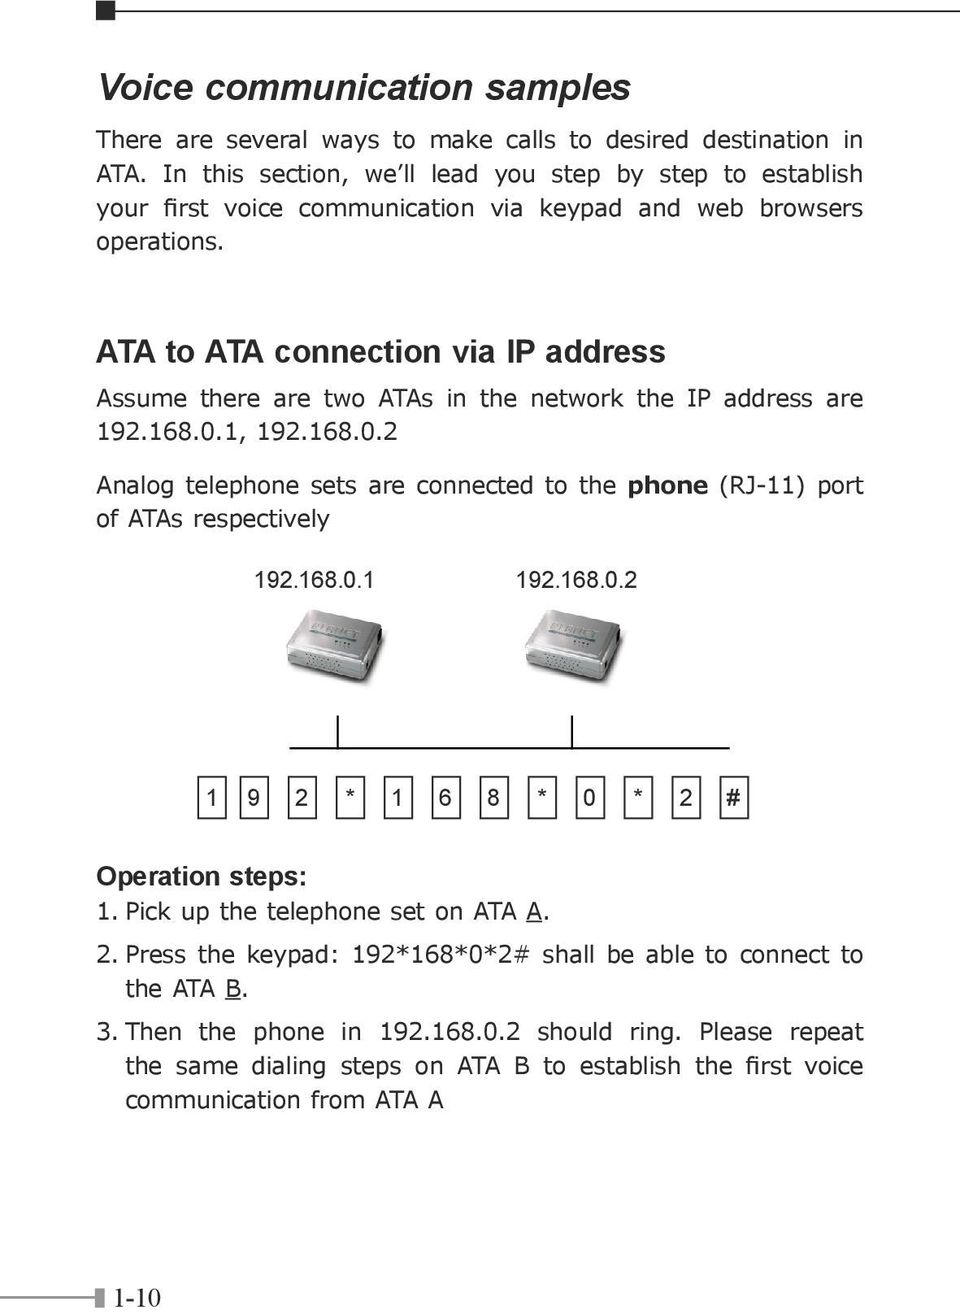 ATA to ATA connection via IP address Assume there are two ATAs in the network the IP address are 192.168.0.